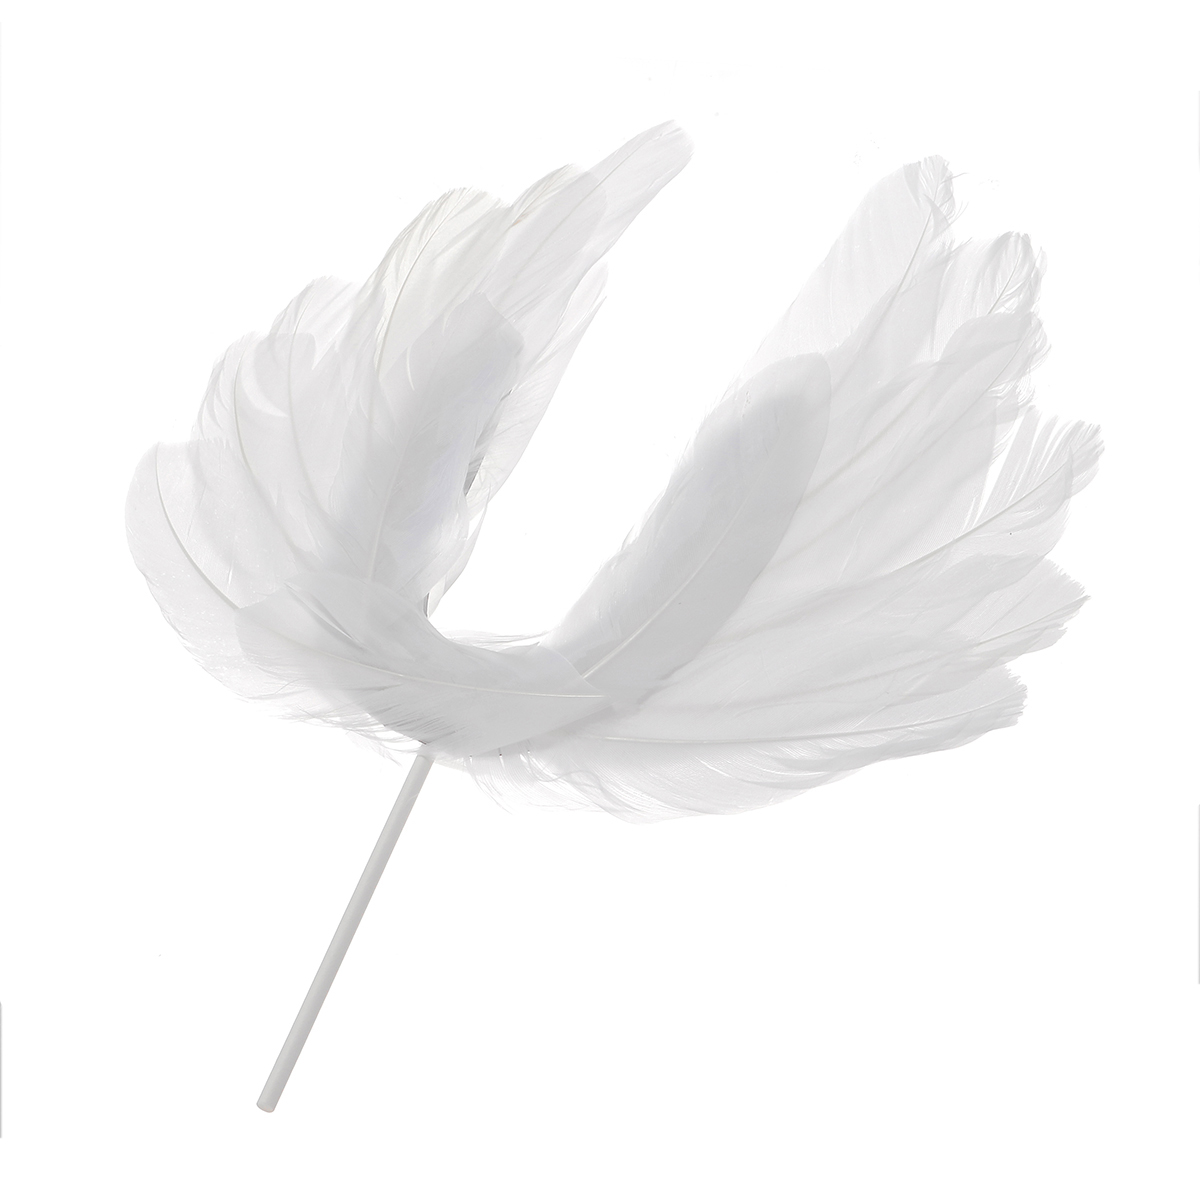 Angel Feather Wing DIY Cake Topper Decor Birthday Valentine's Day Party Romantic Cute Decorations